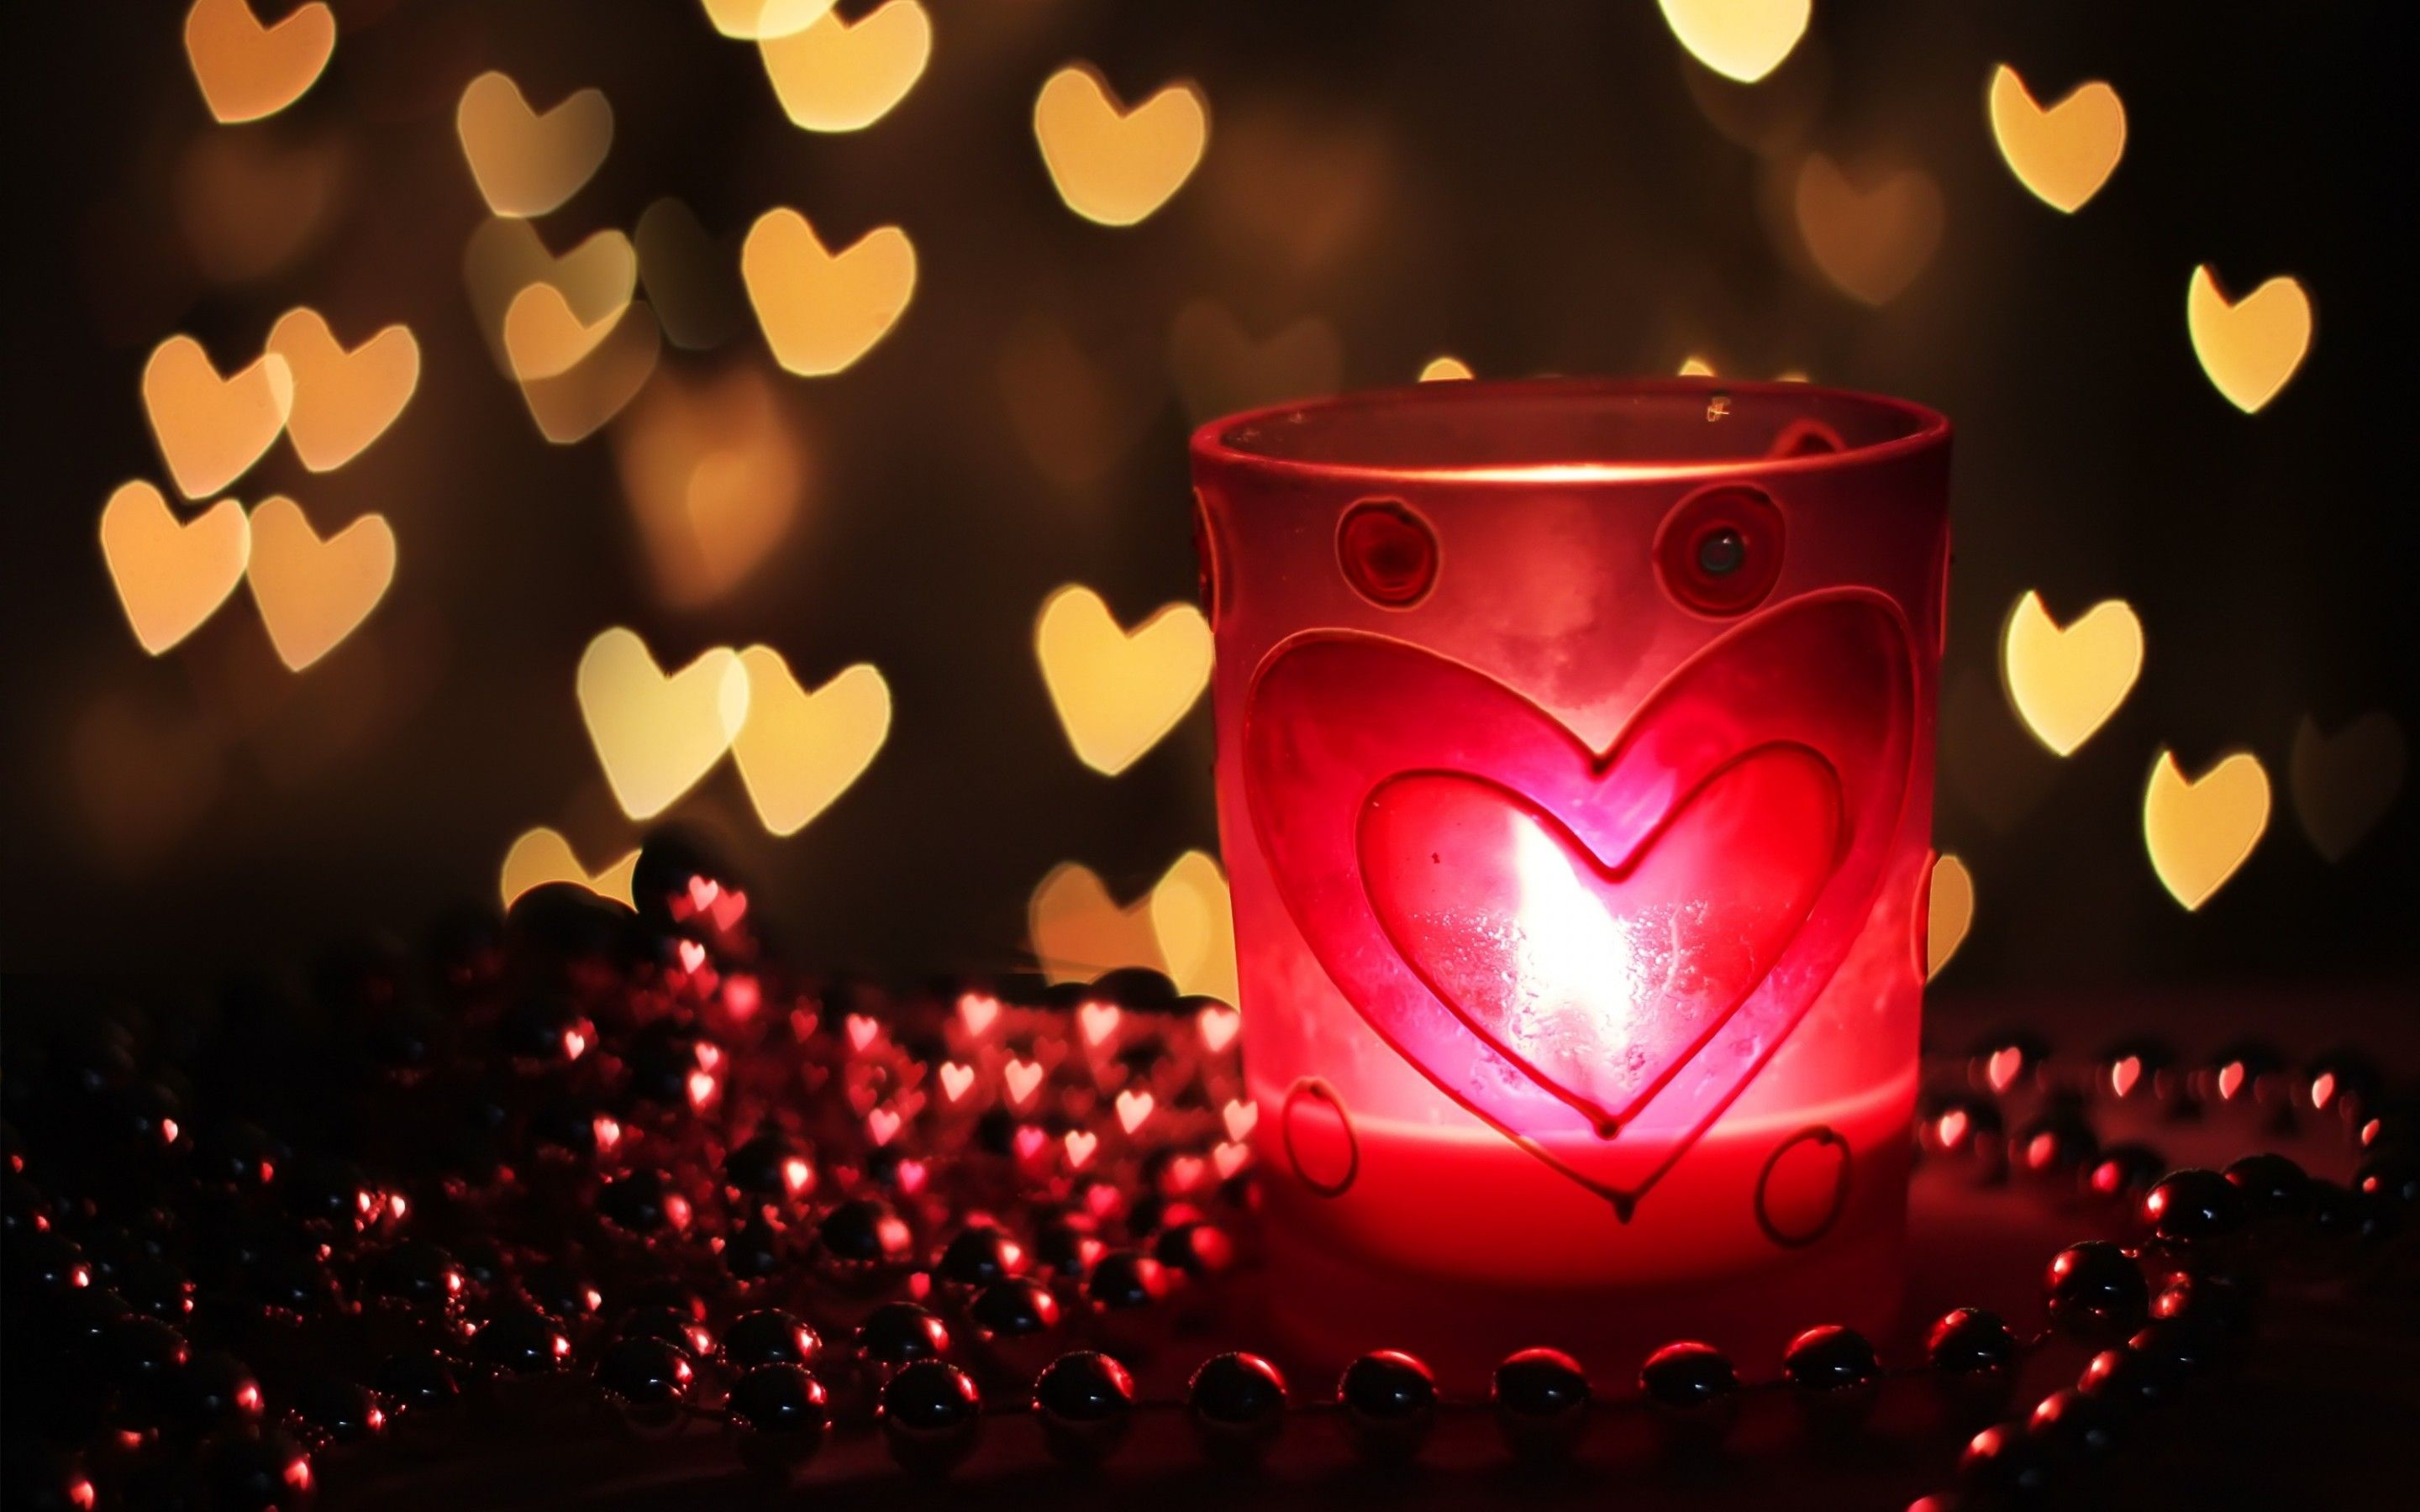 stunning full hd wallpapers collection candle wallpaper of